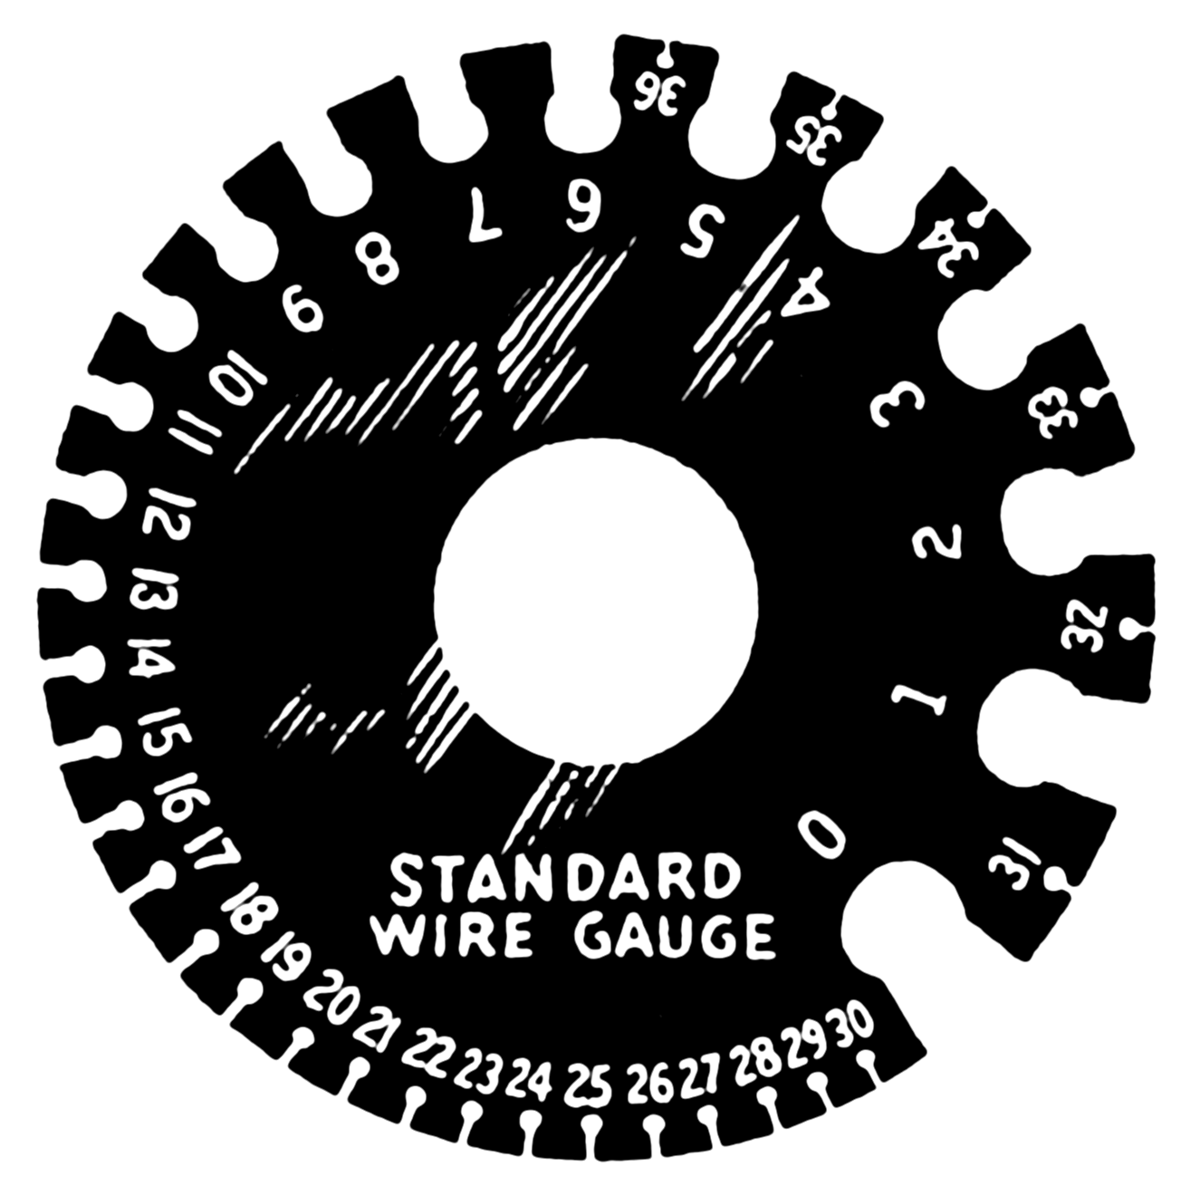 Standard wire gauge wikipedia keyboard keysfo Images